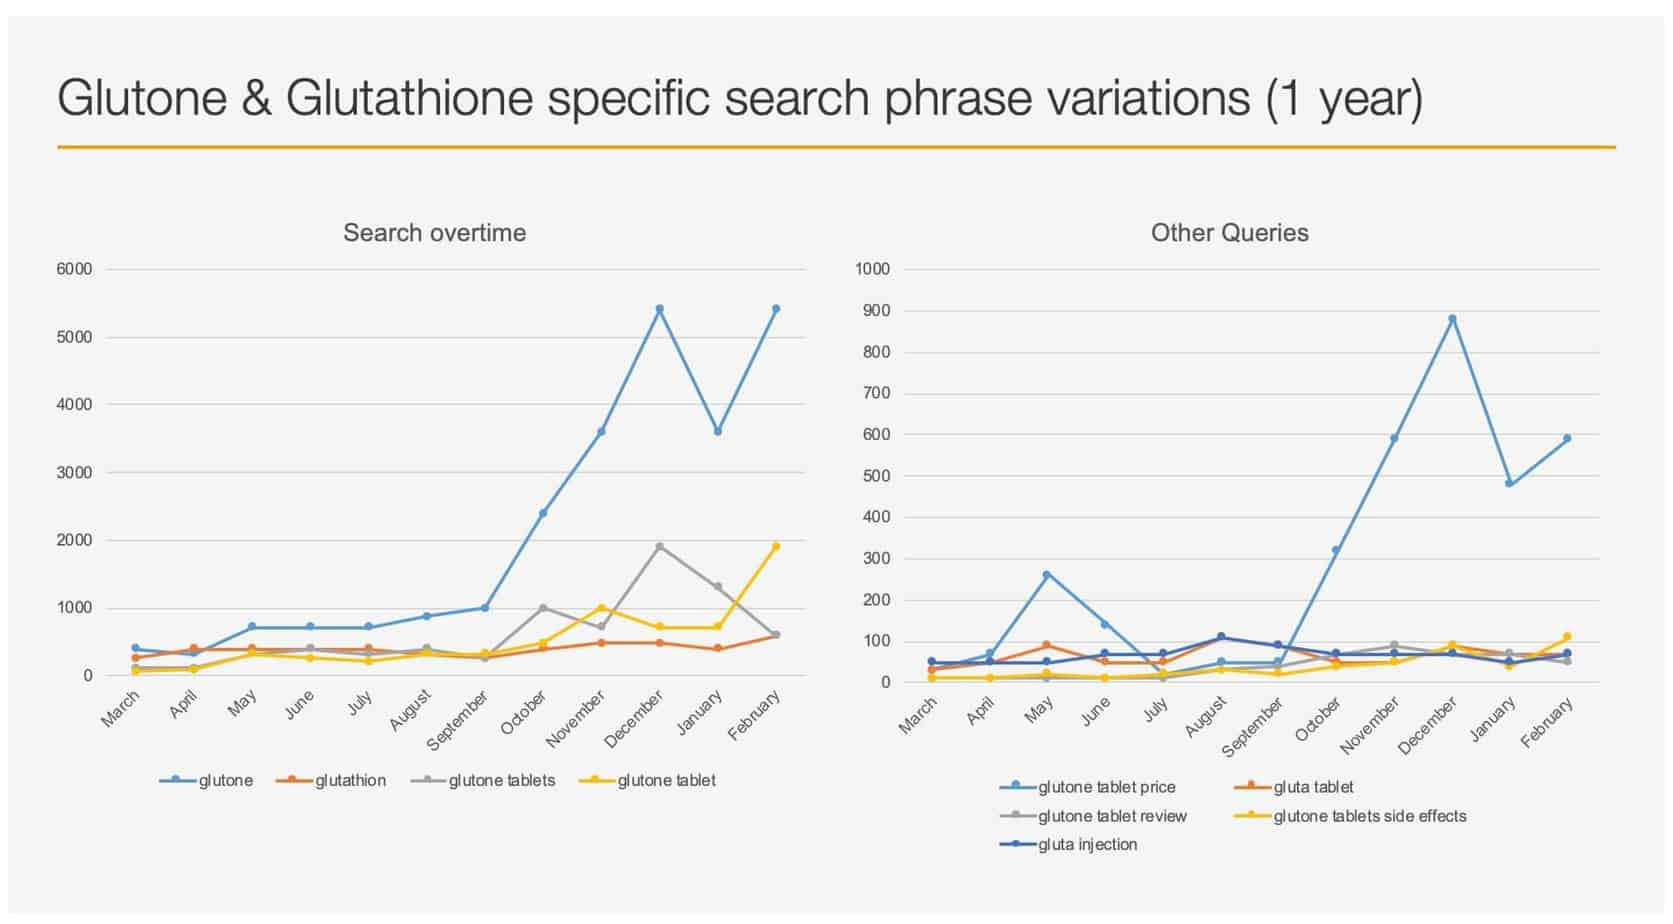 Glutone & Glutathione specific Search Phrase Variations(1 year)